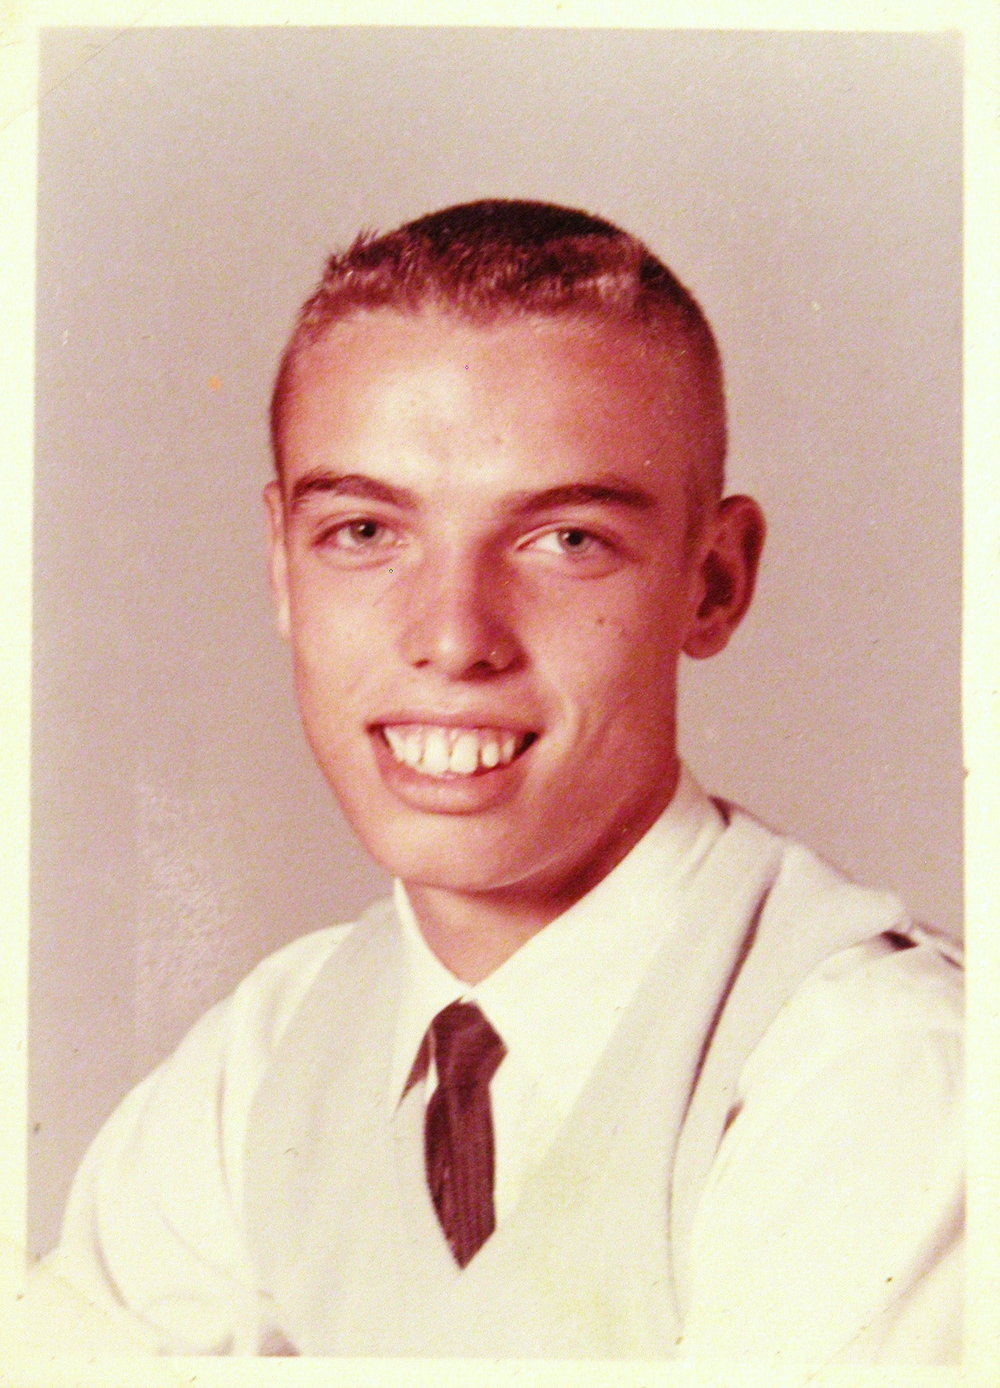 Bob McNeil - 1964 - Age 15 - Ninth Grade - Channelview High School Picture